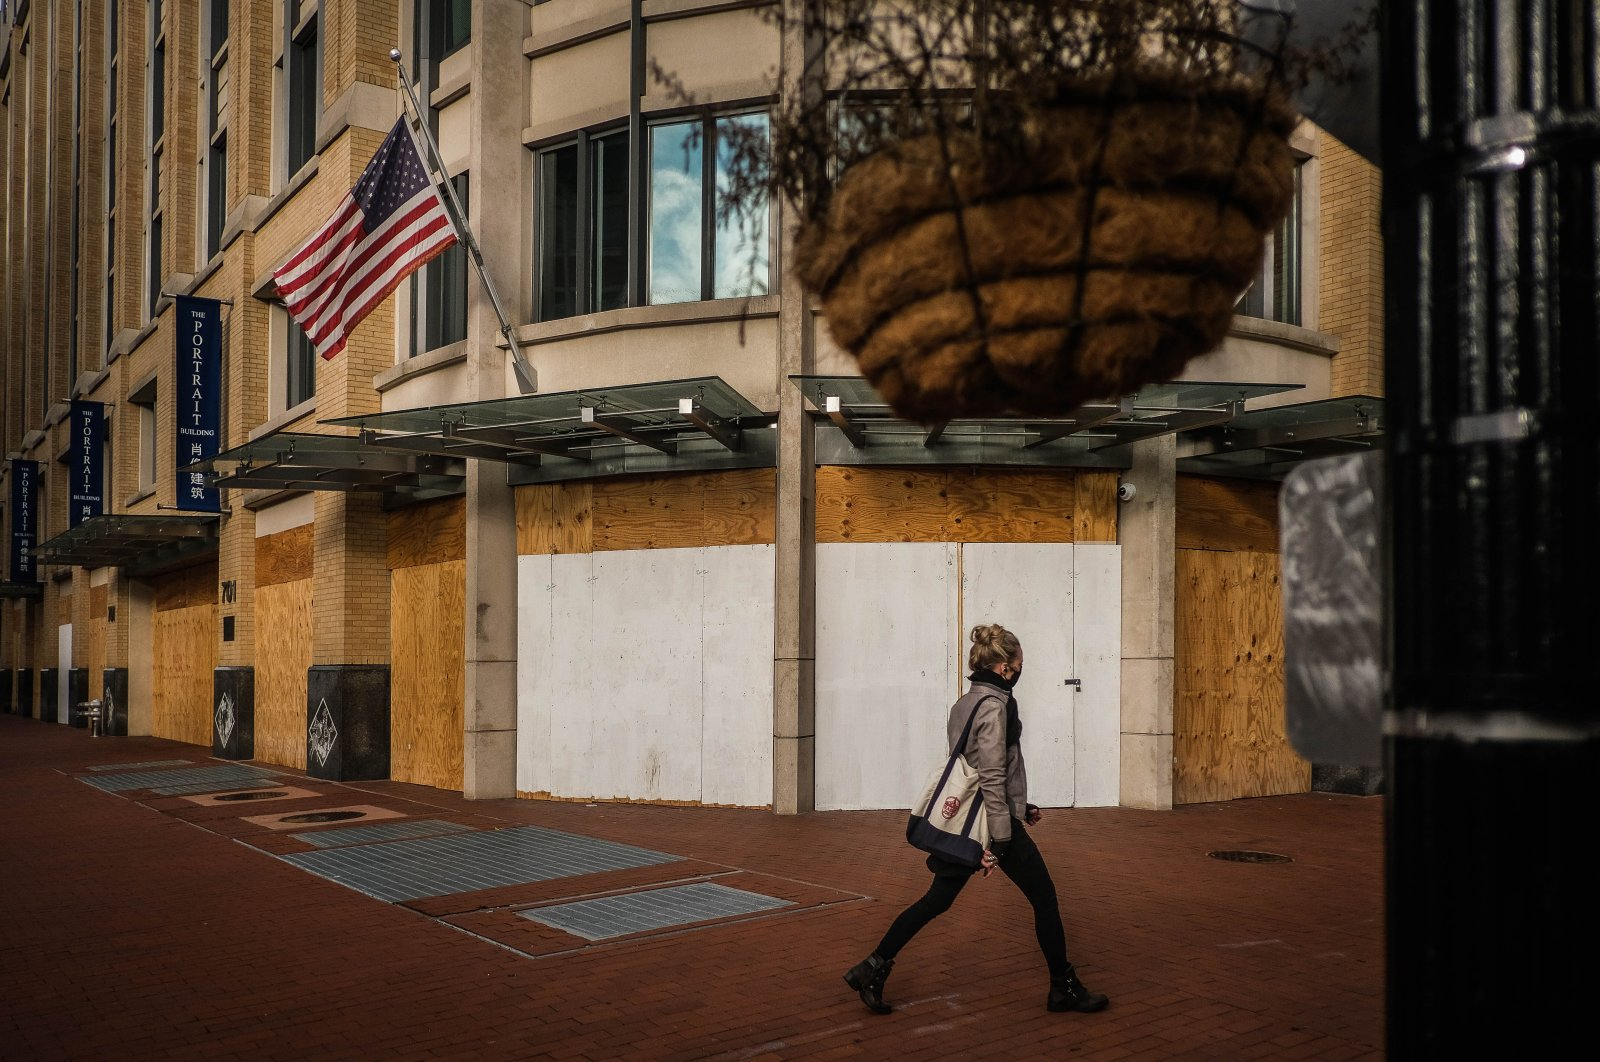 A woman passes by a store protected with wooden boards in Washington, D.C., U.S., Nov. 1, 2020. (EPA-EFE Photo)